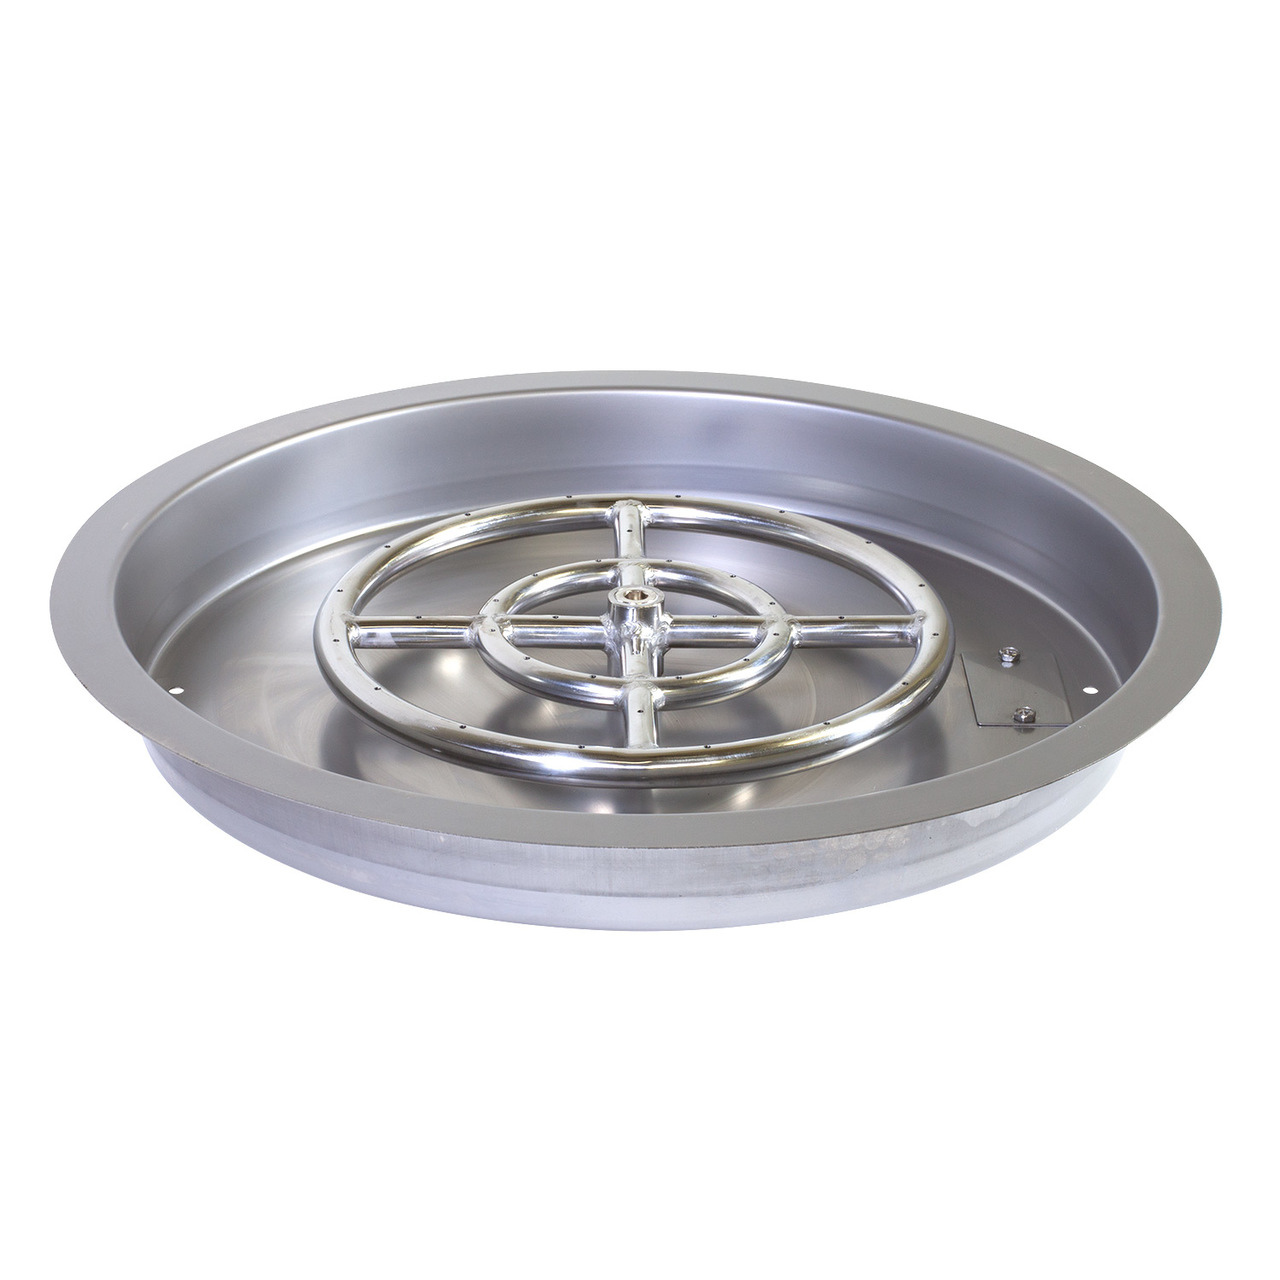 Stainless Steel 19 Round Drop In Fire Pit Pan With 12 Burner Ring